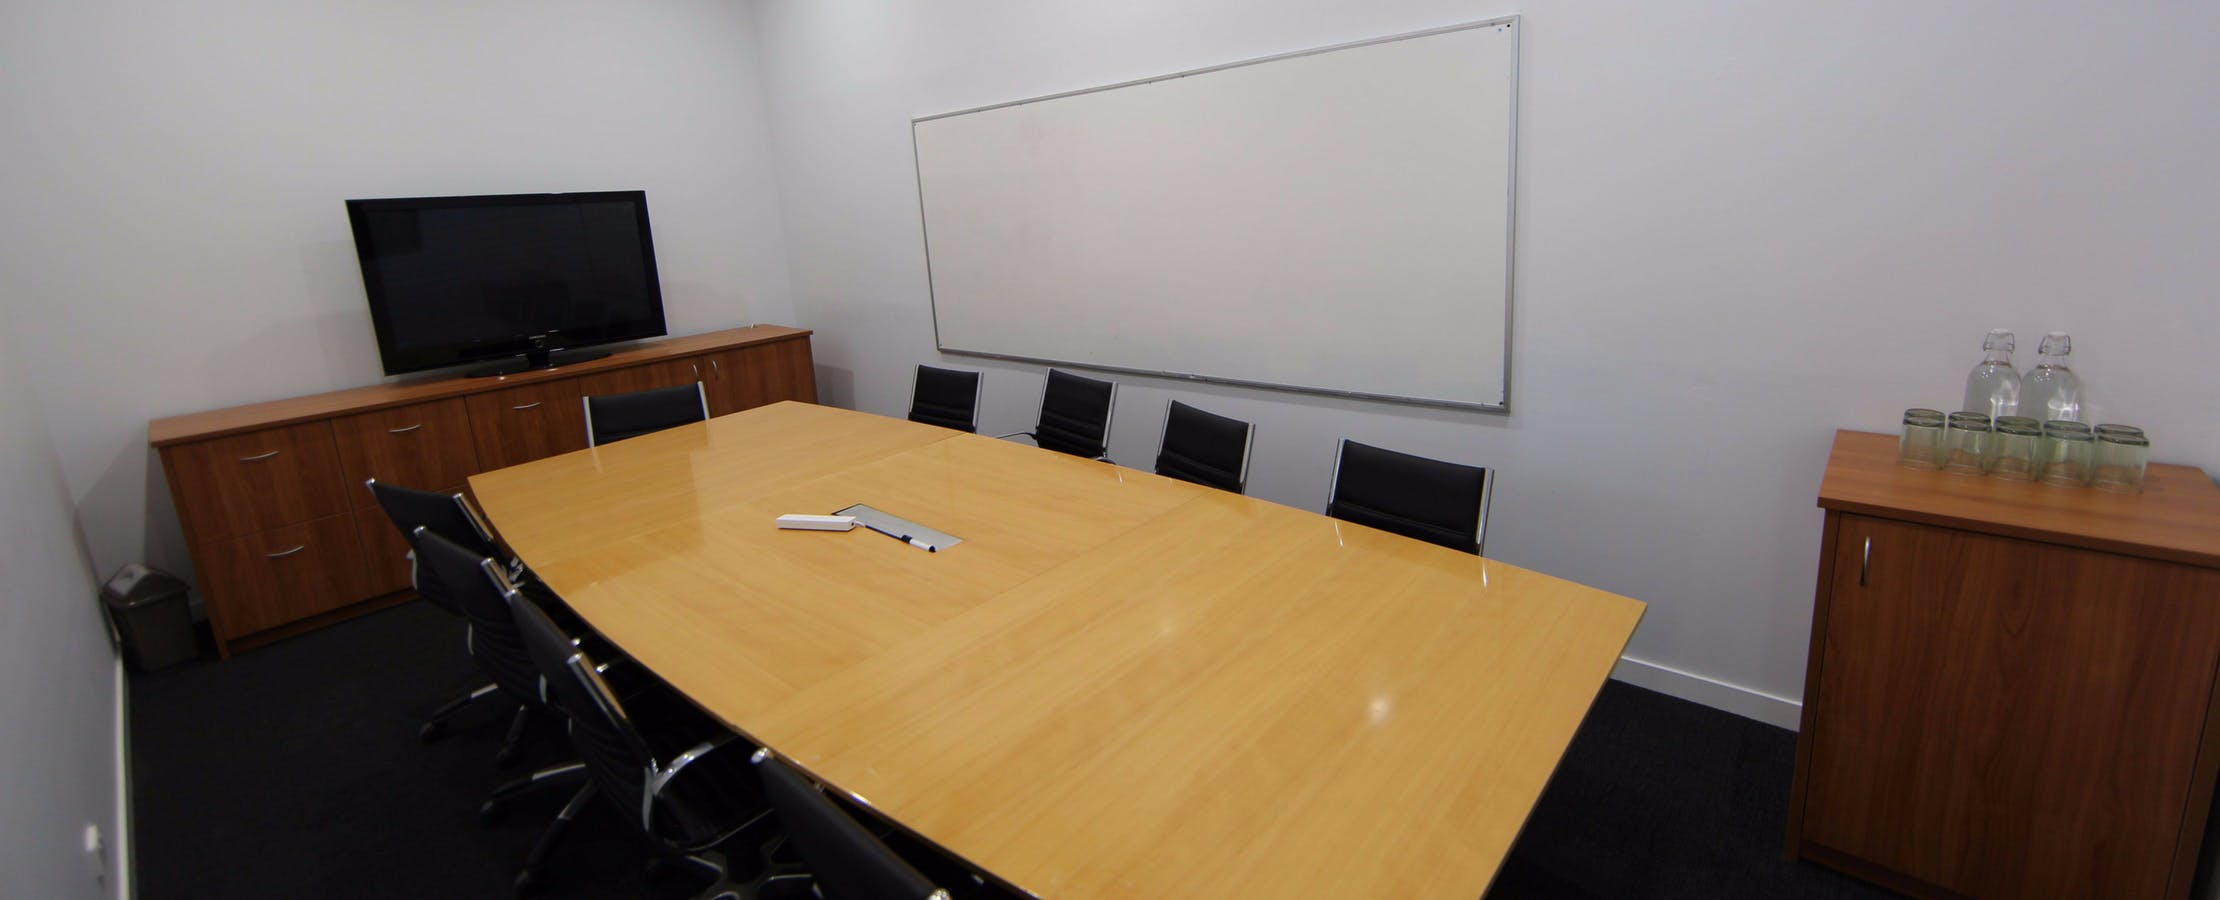 Meeting room at Frankston Foundry, image 1